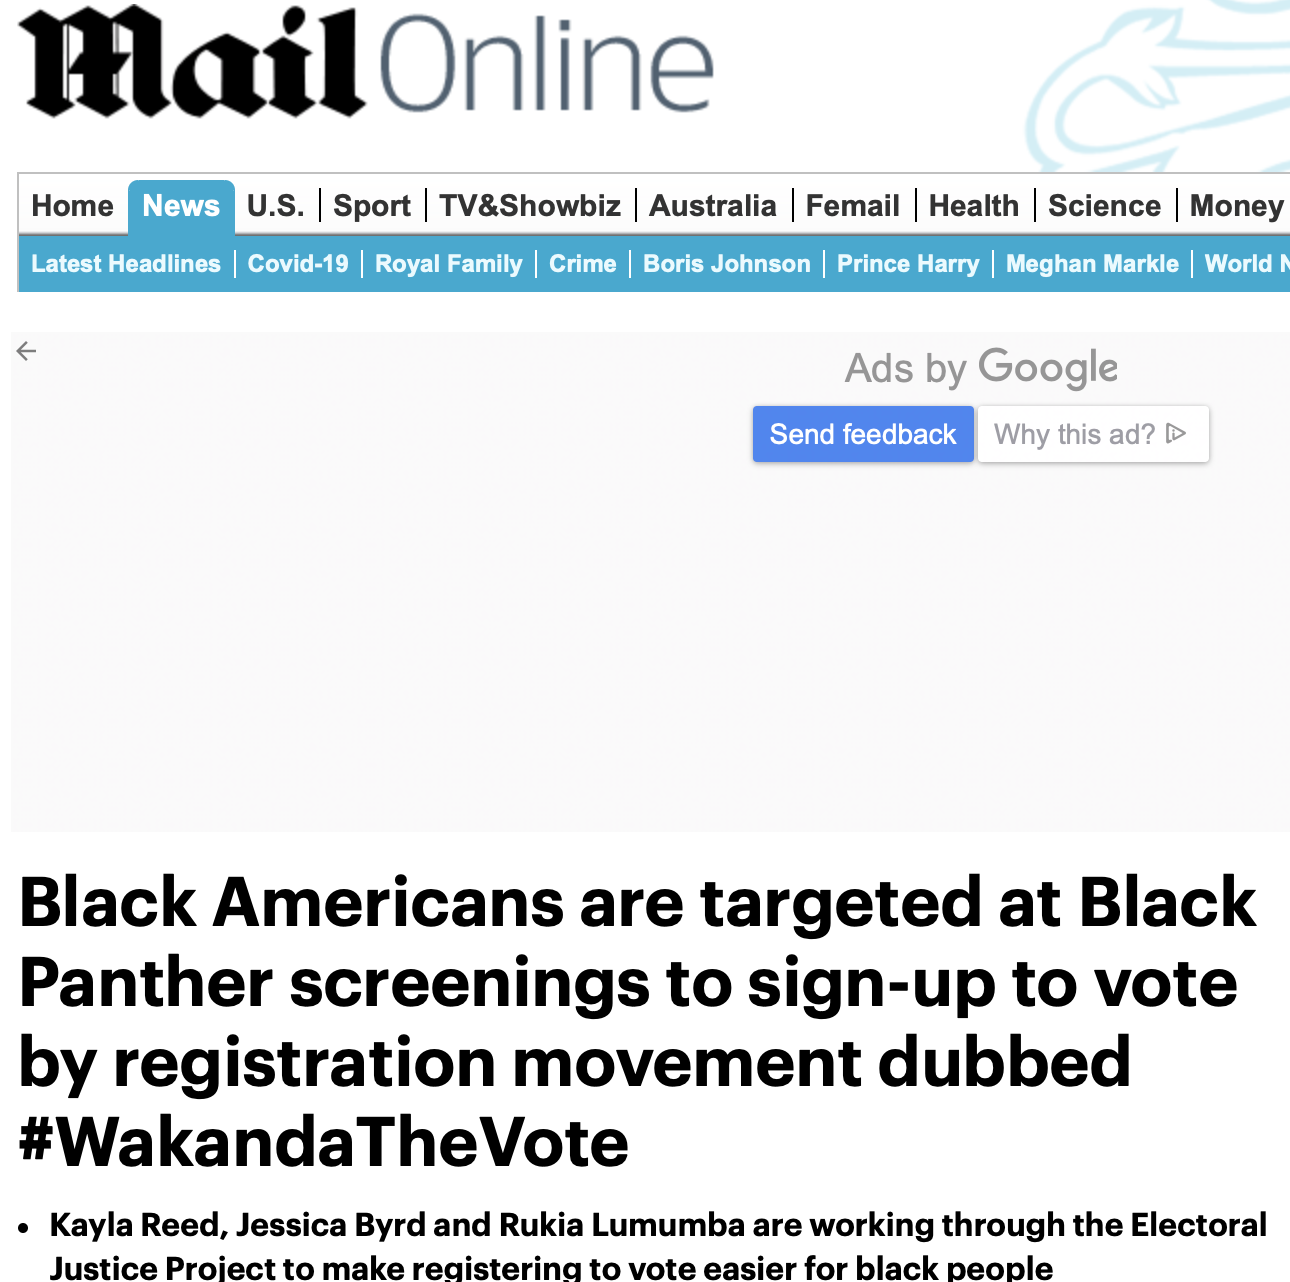 Black Americans are targeted at Black Panther screenings to sign-up to vote by registration movement dubbed #WakandaTheVote